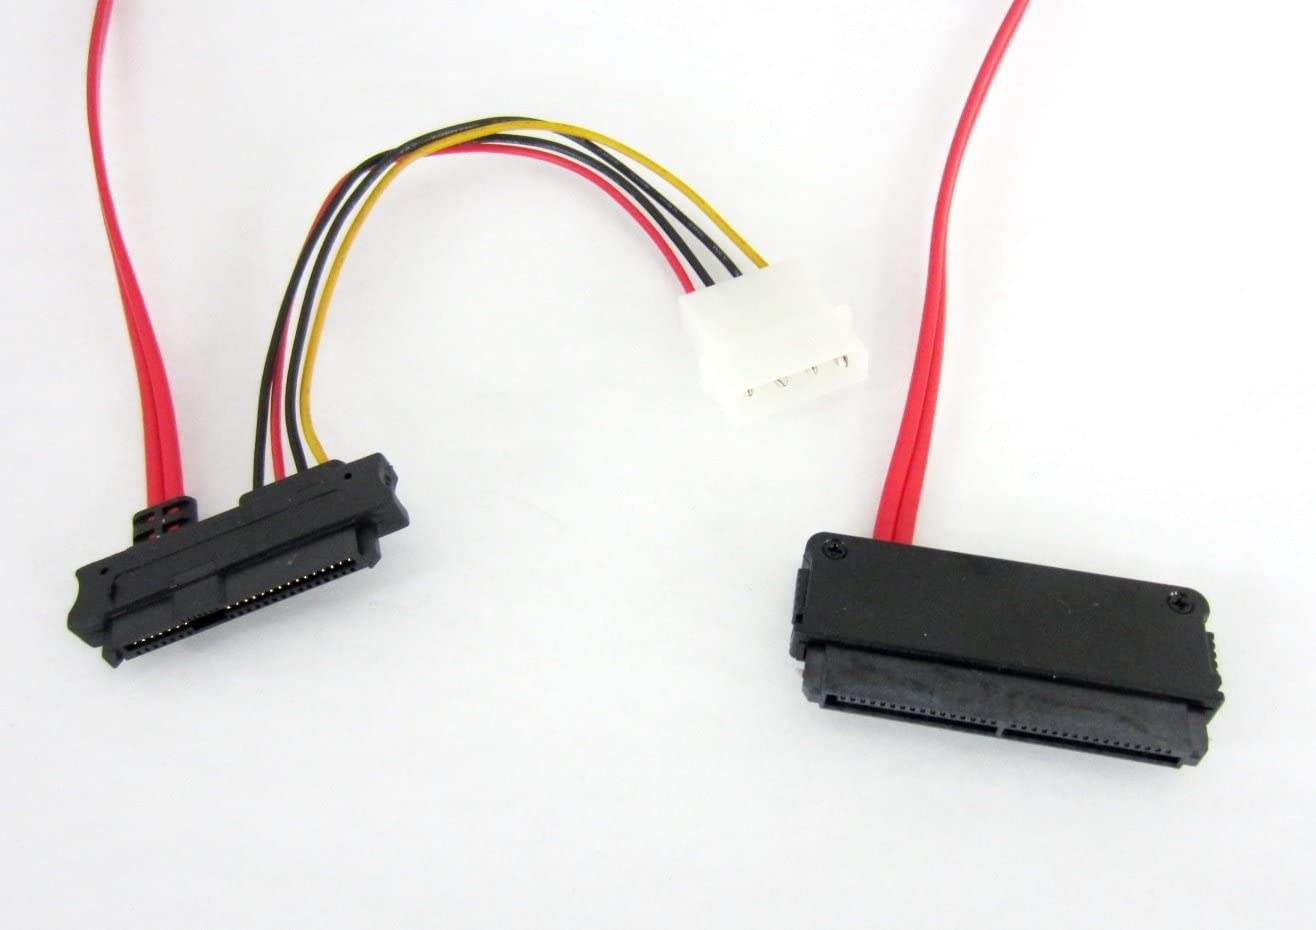 SFF-8484 To 4 SFF-8482 32Pin-4 29Pin SAS Data Cable Power For